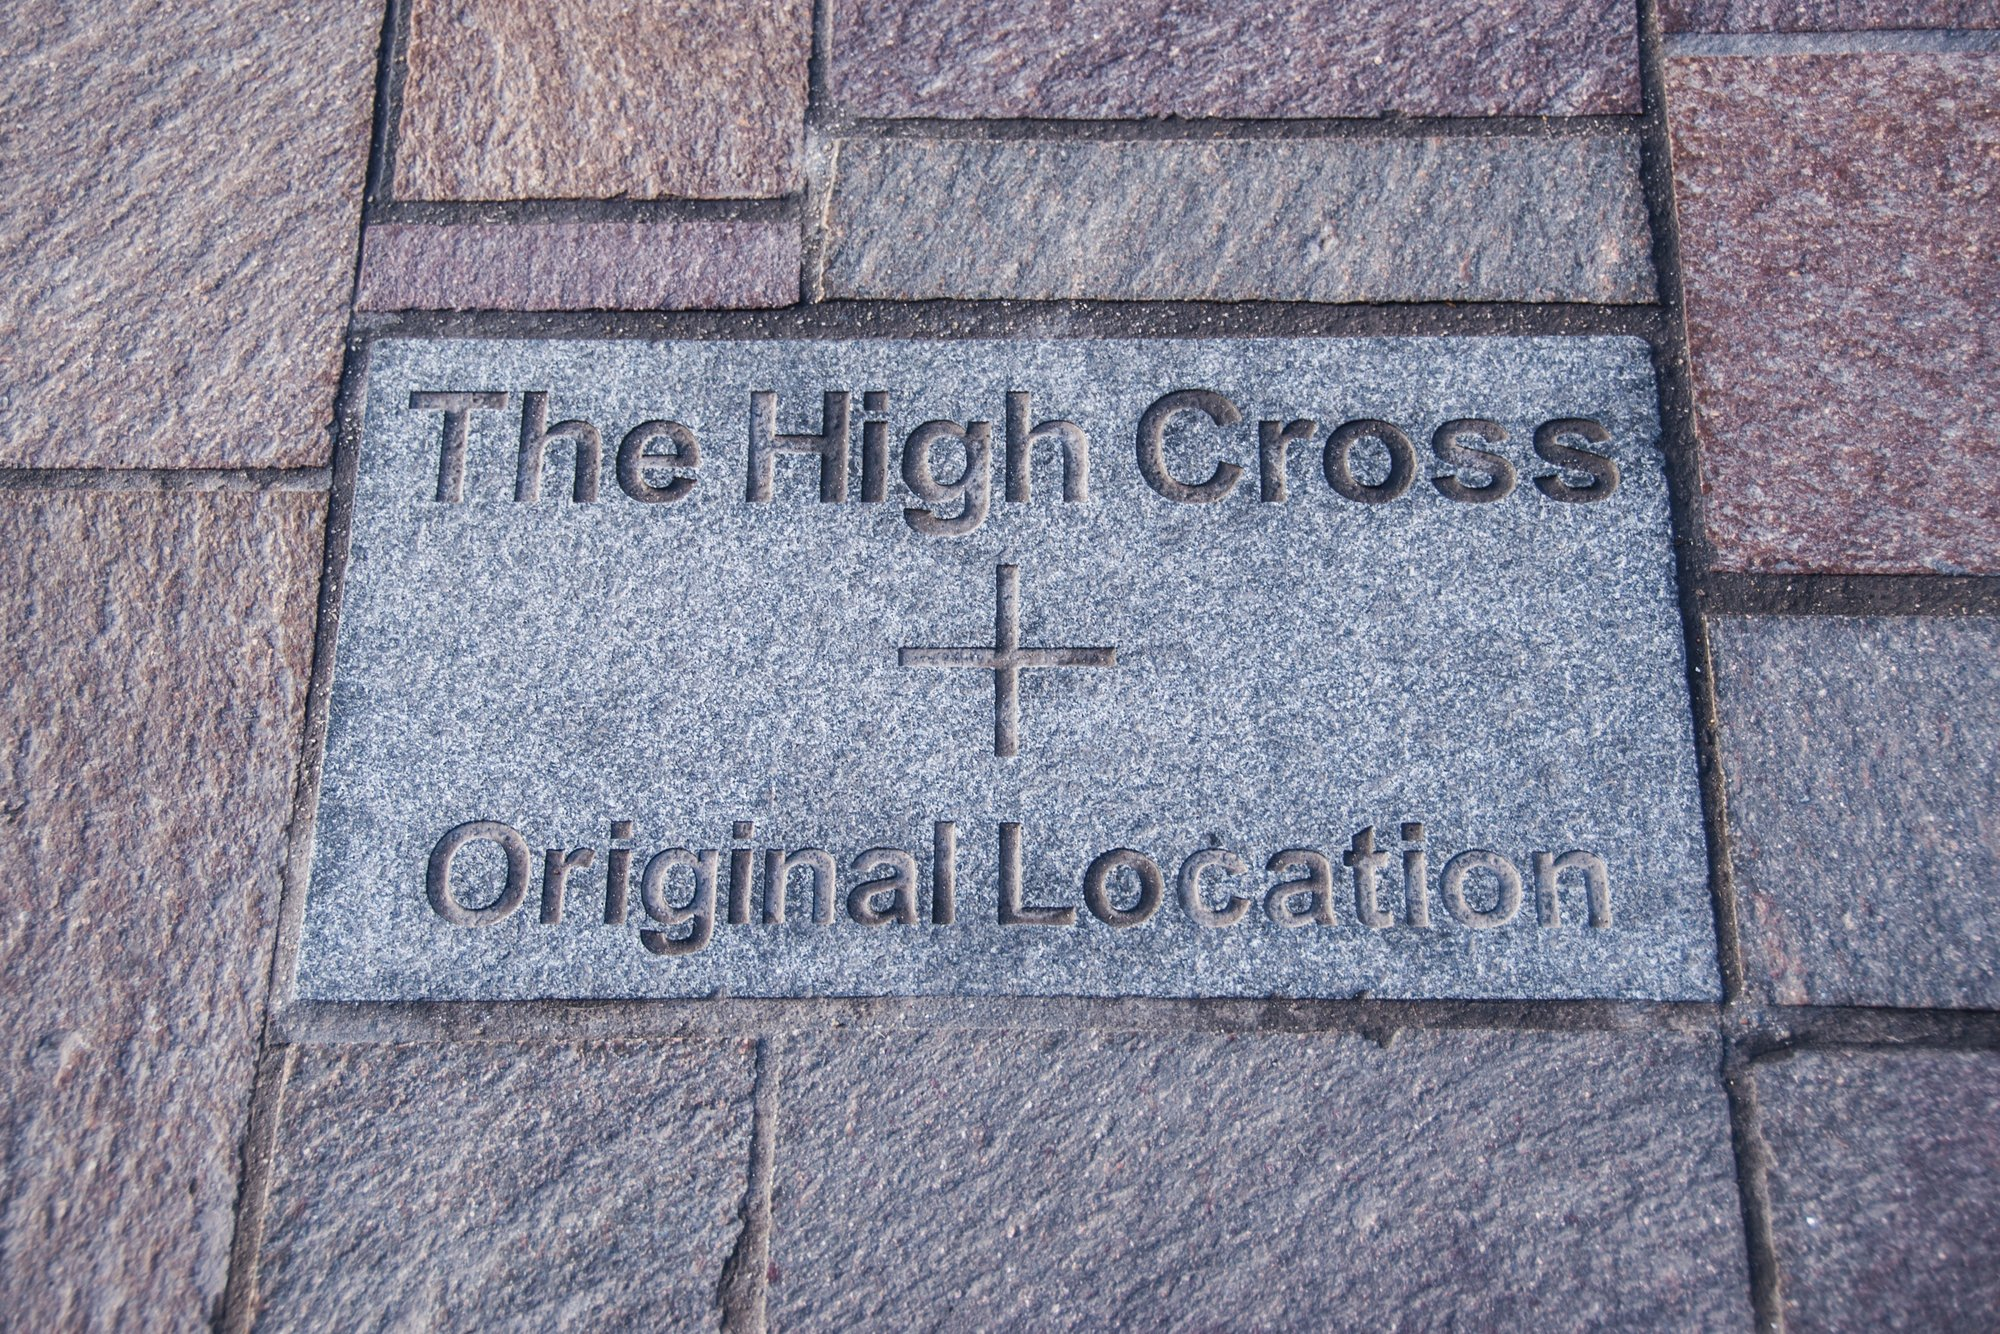 A stone in the road on Highcross Street marks the location of the original High Cross -